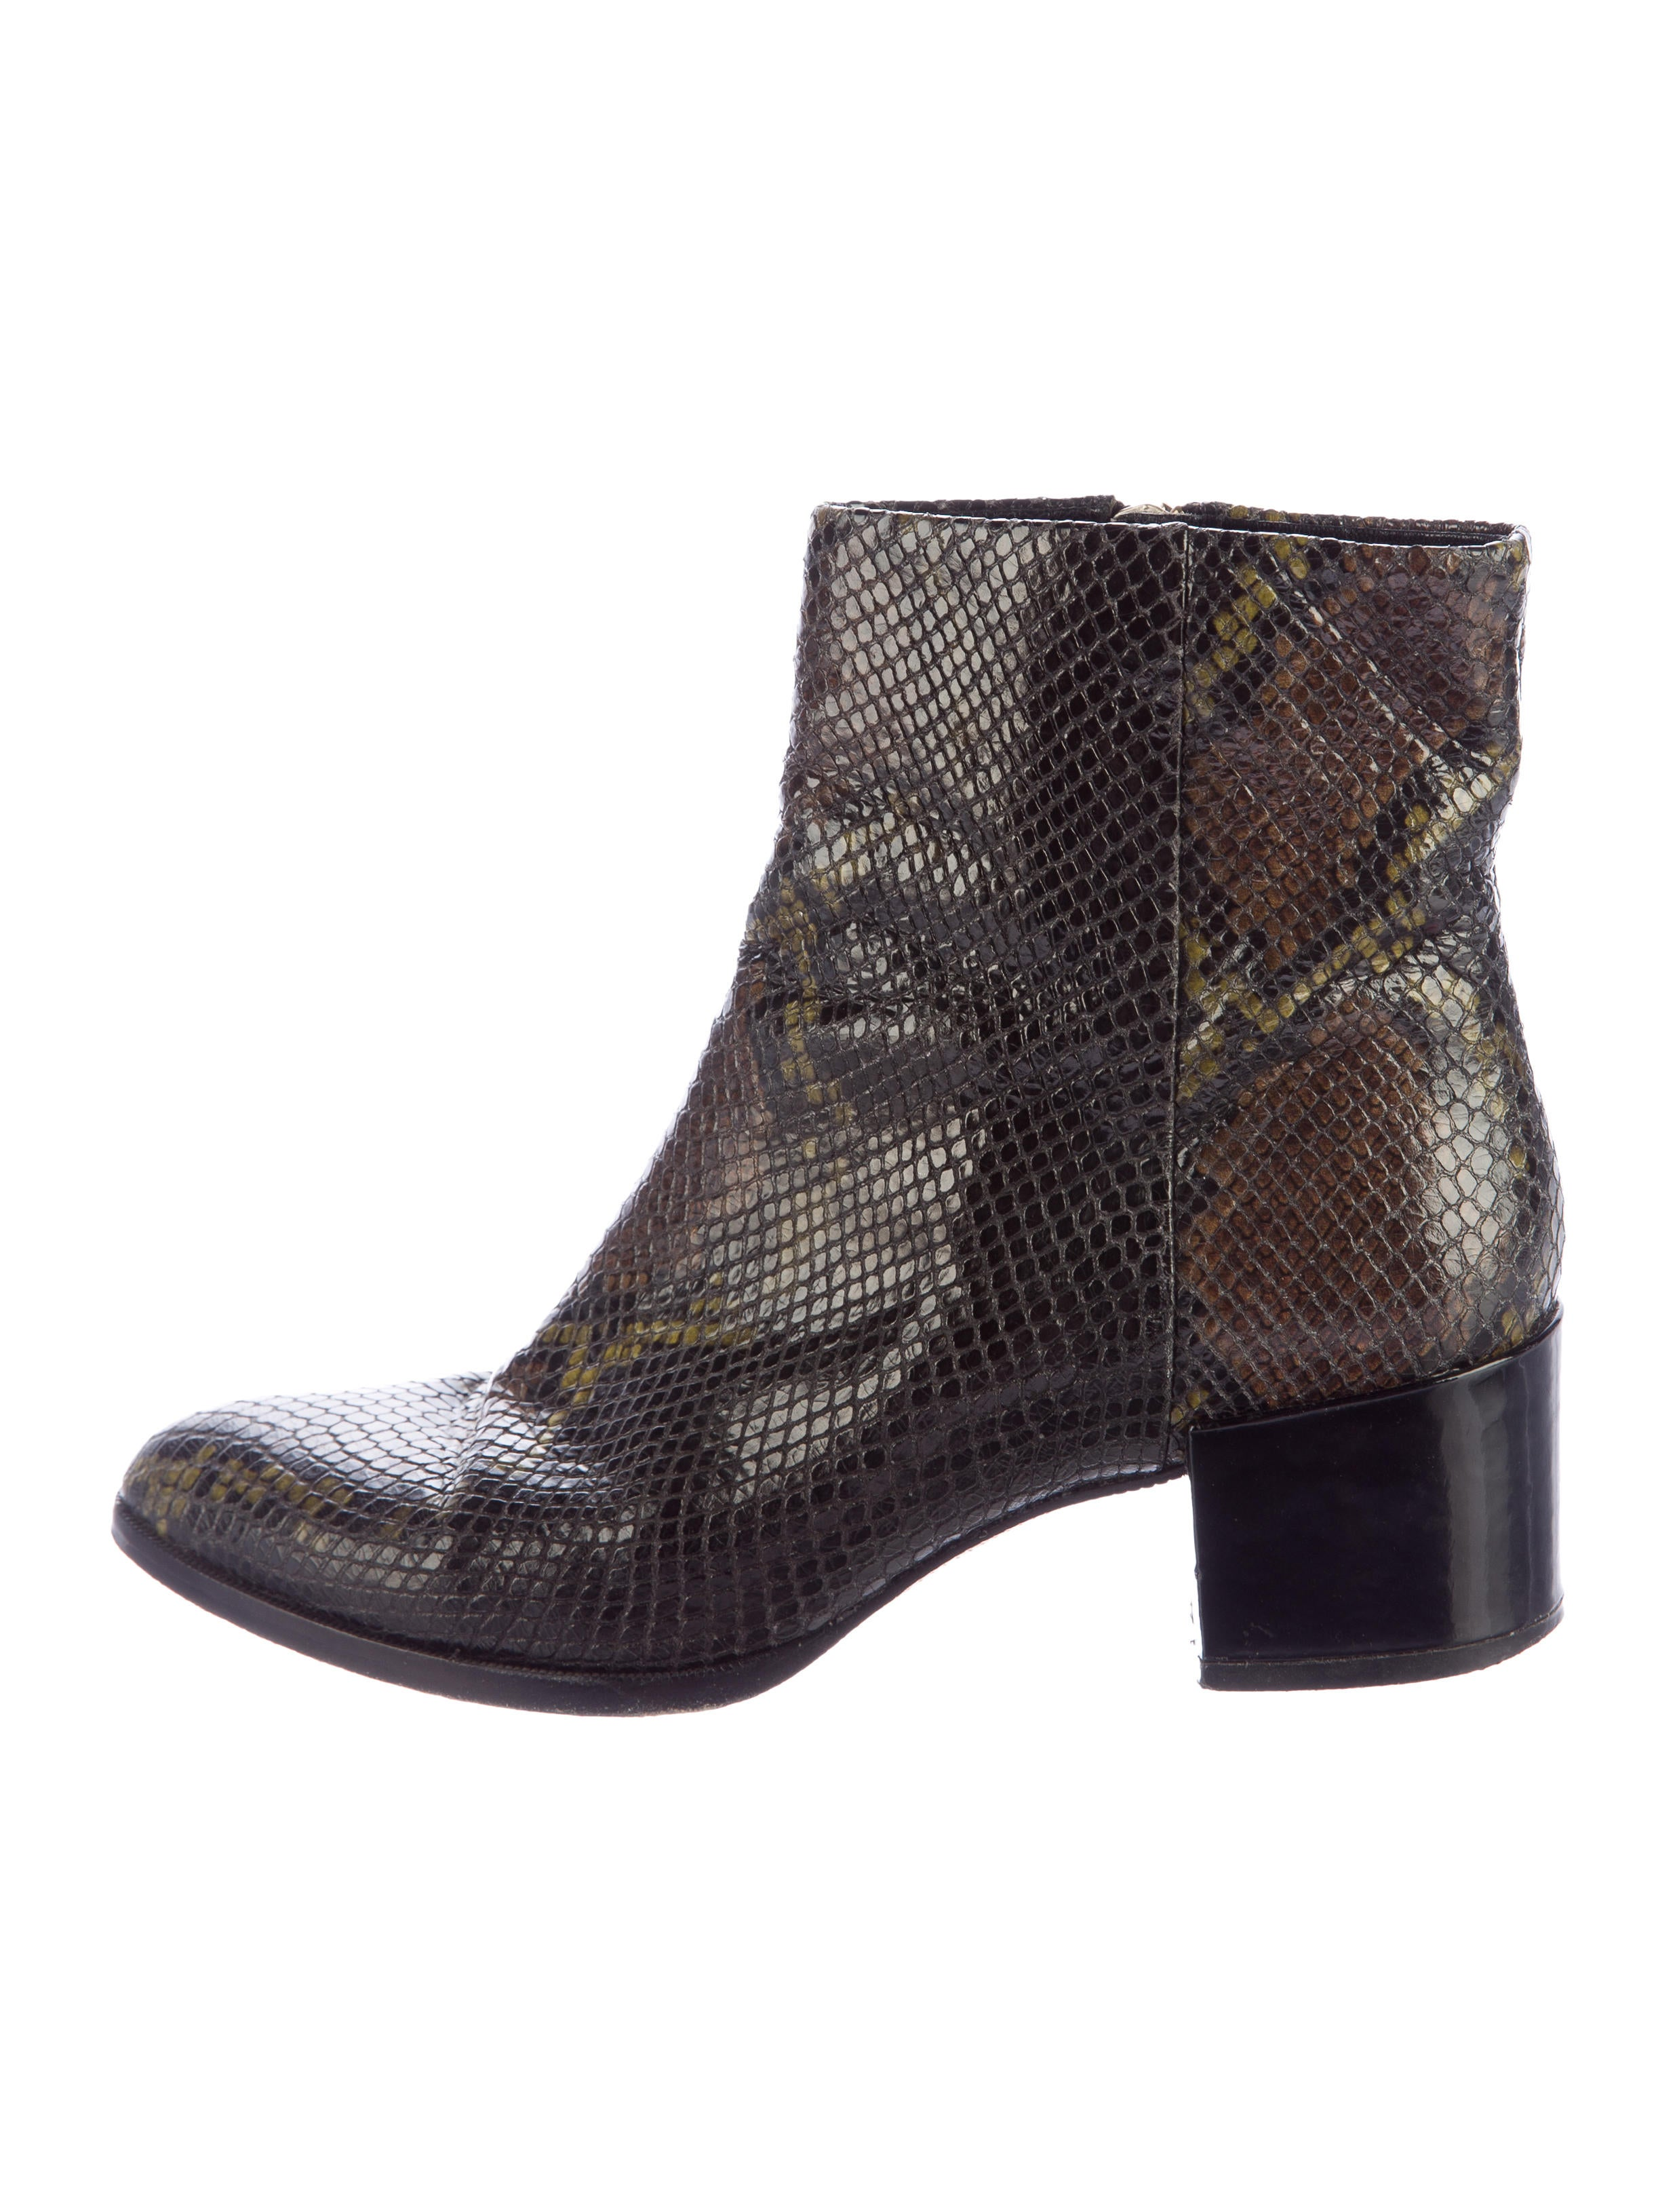 b brian atwood embossed pointed toe ankle boots shoes